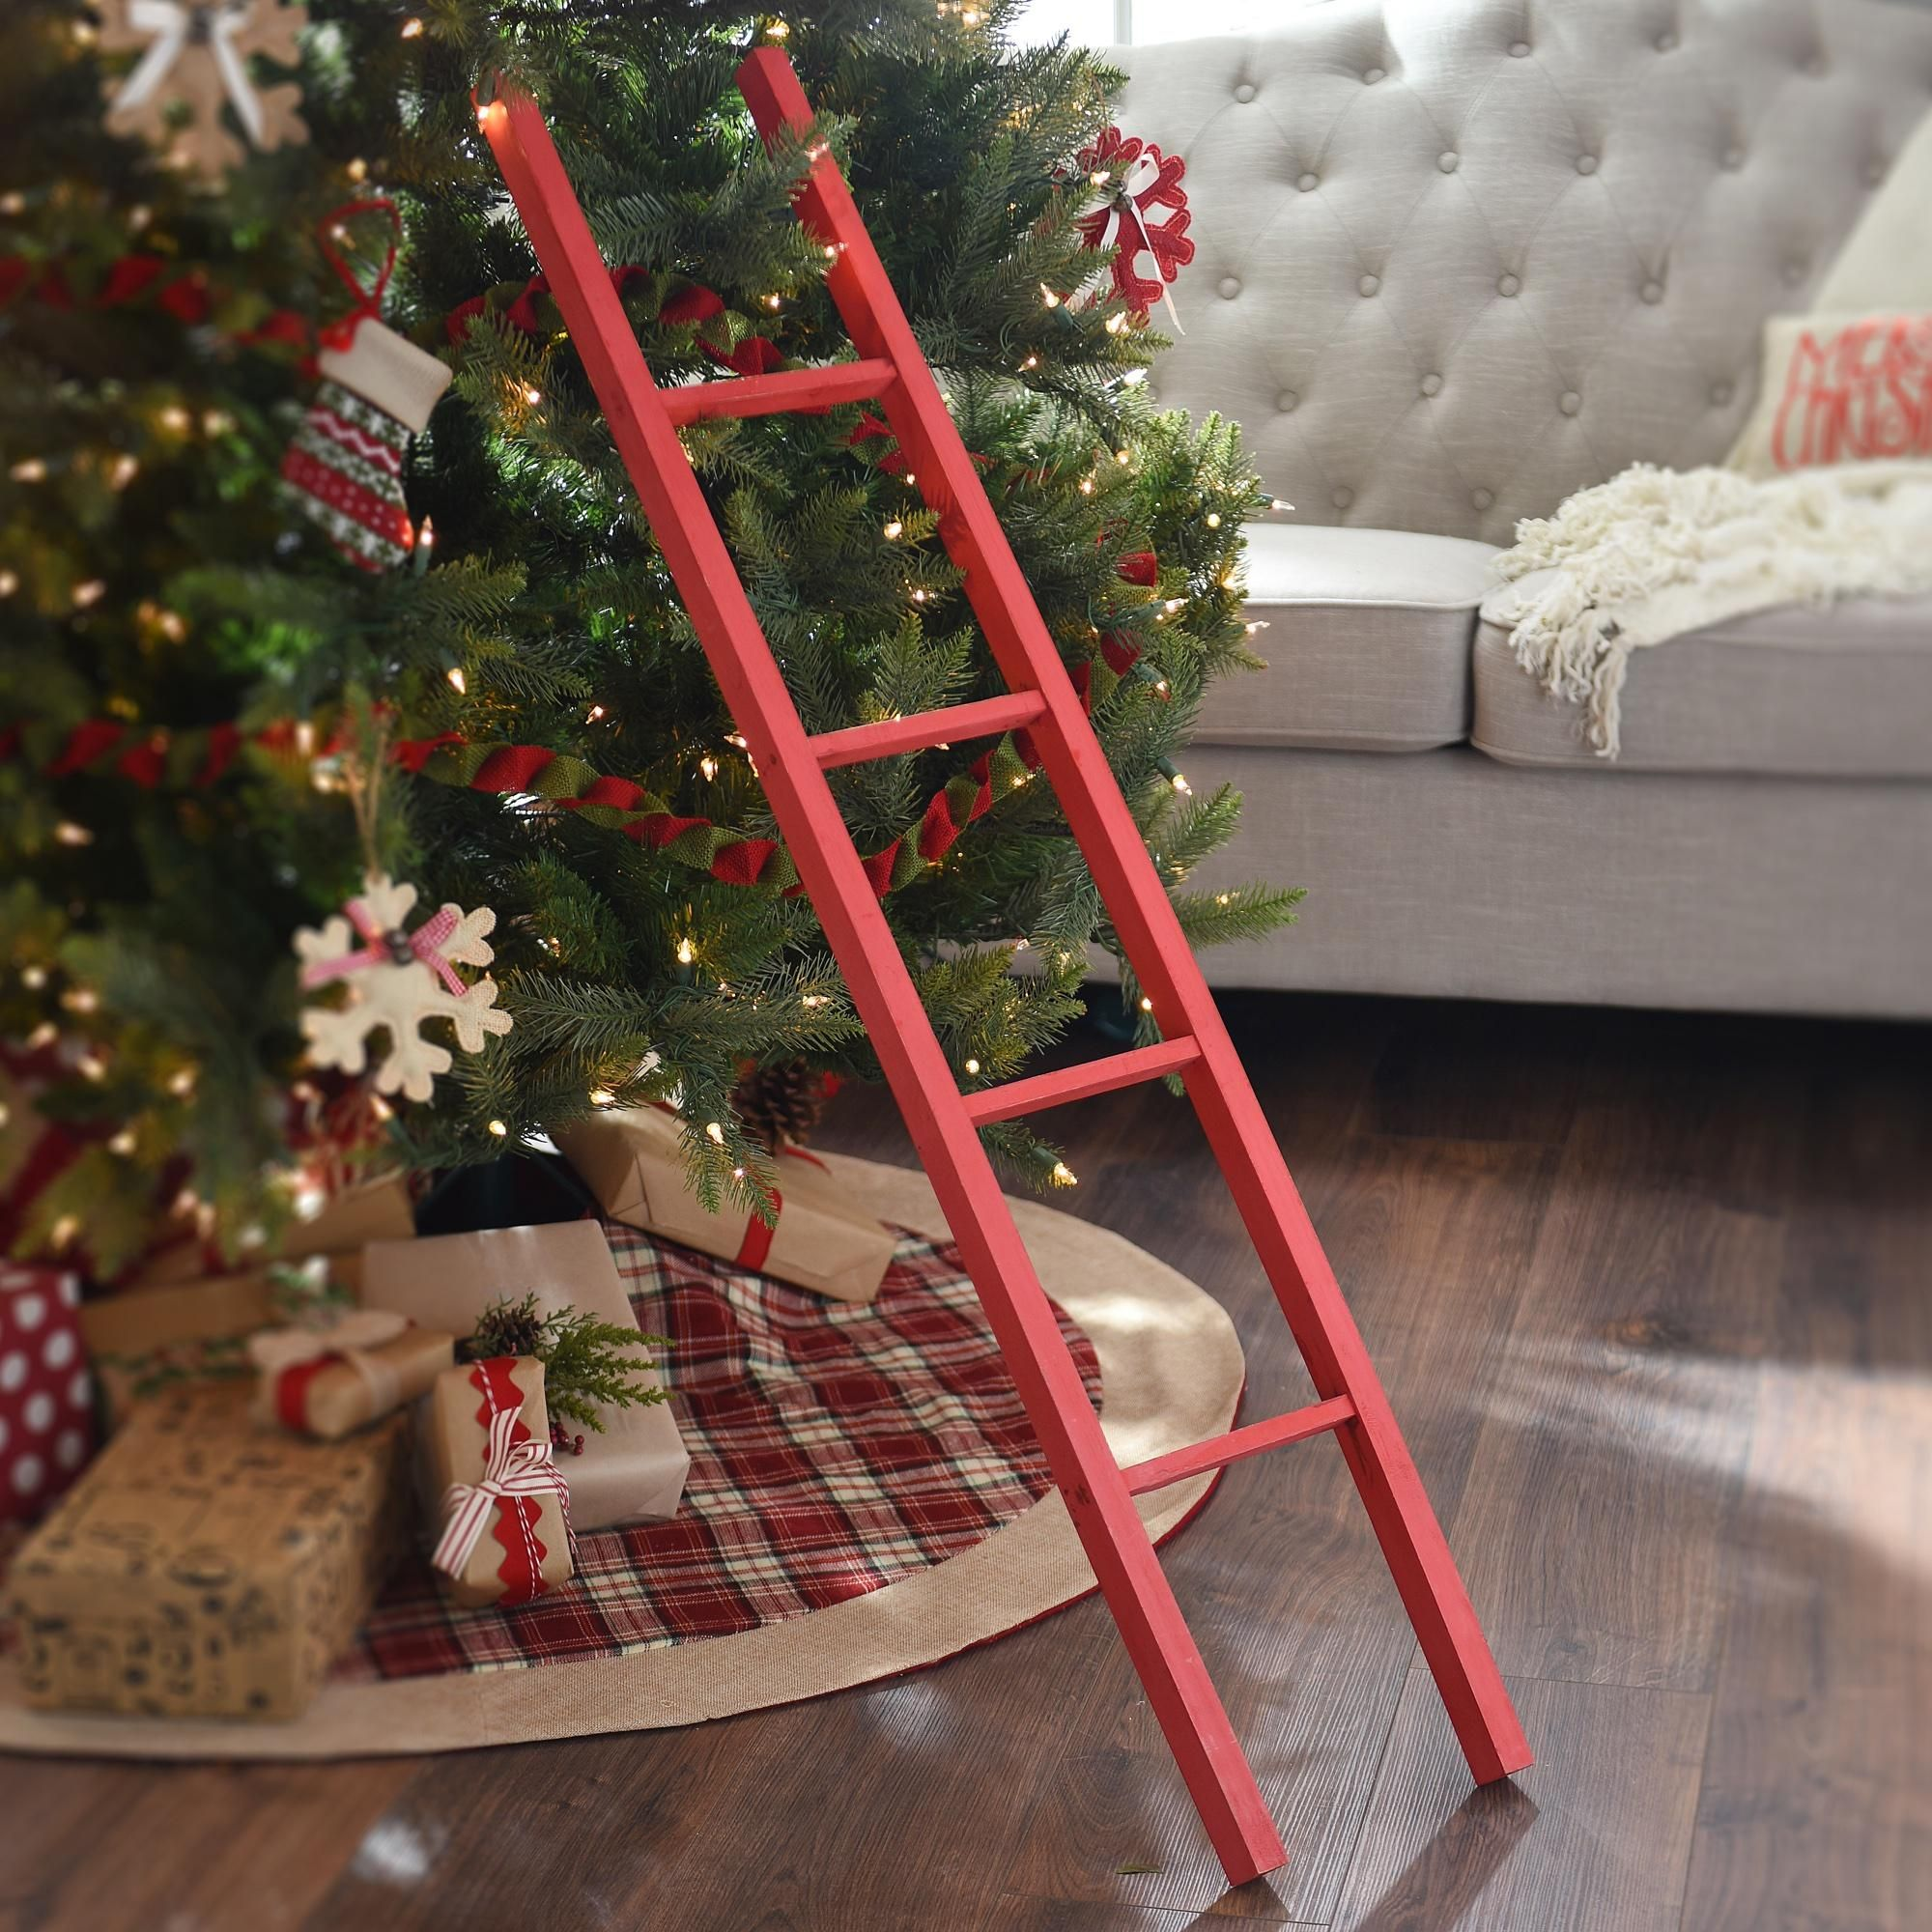 Red Wooden Ladder Christmas Decorations Farmhouse Christmas Decor Elf Christmas Tree